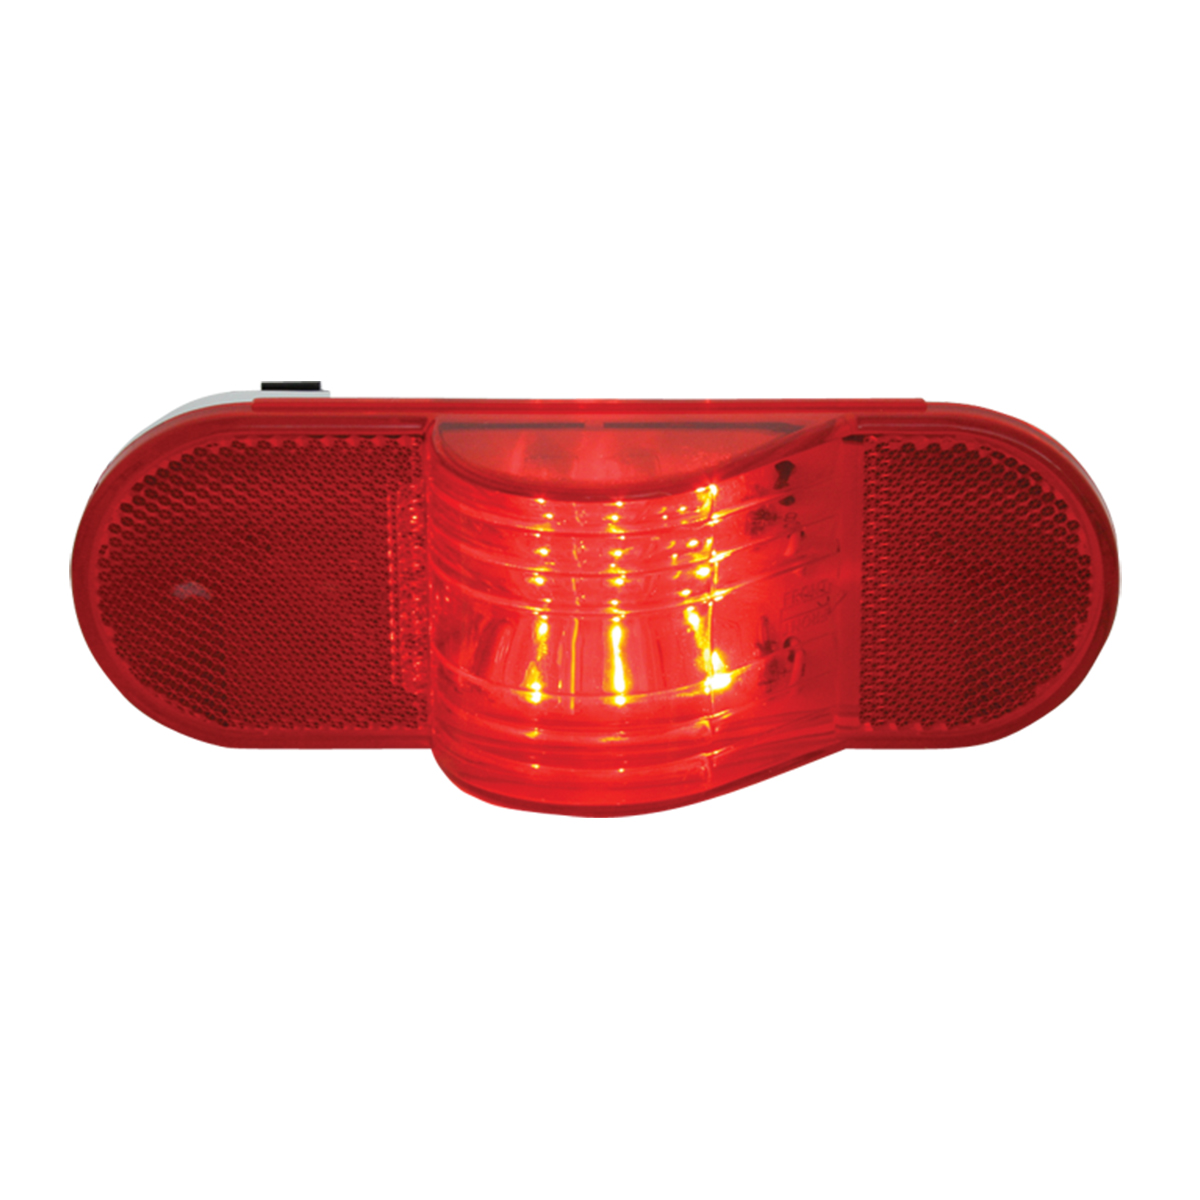 79842 Oval Sider Marker/Turn LED Light in Red/Red